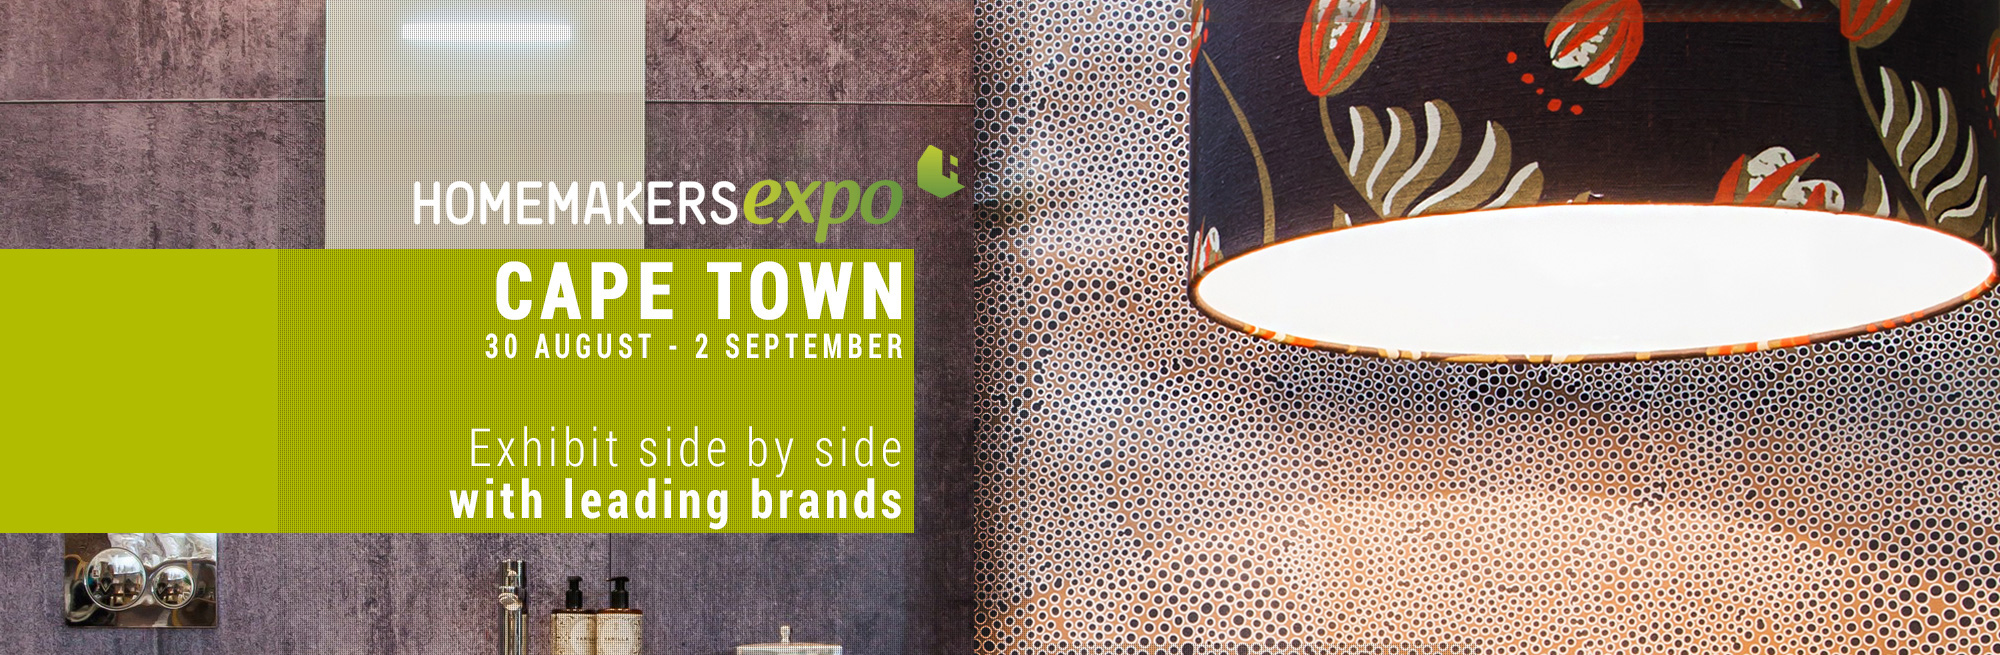 2018 Cape Town HOMEMAKERS Expo